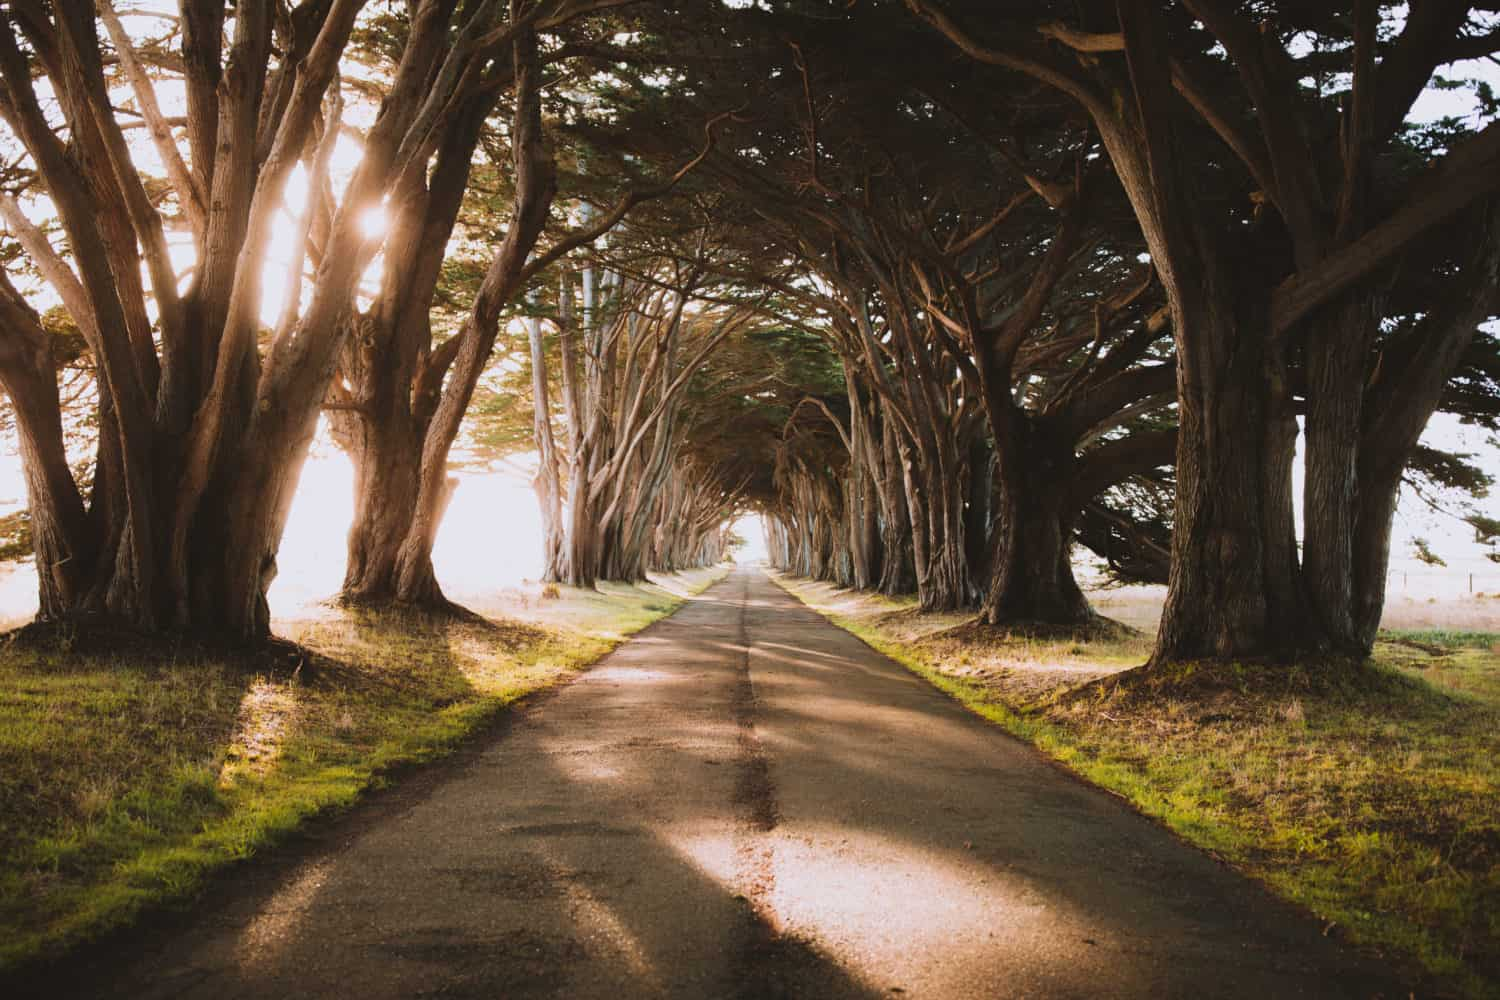 Northern California Road Trip Itinerary - Cypress Tree Tunnel in Point Reyes National Seashore